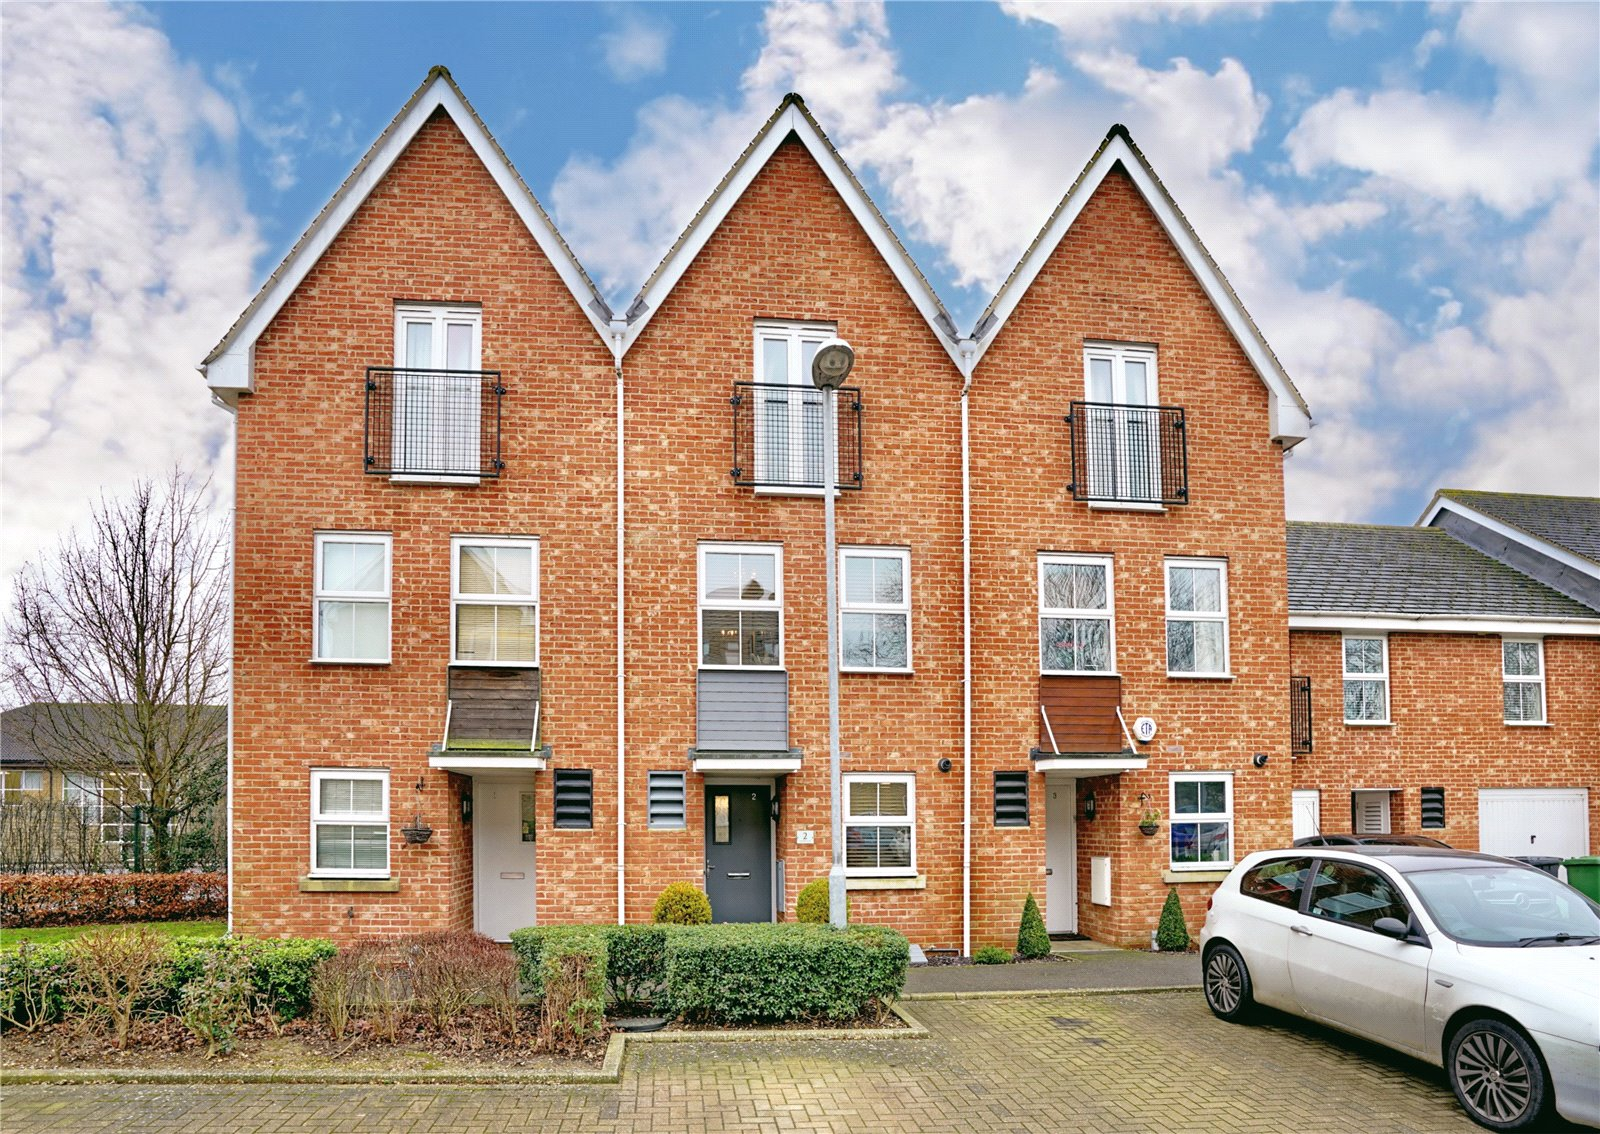 4 bed house for sale in Linton Close, Eaton Socon, PE19